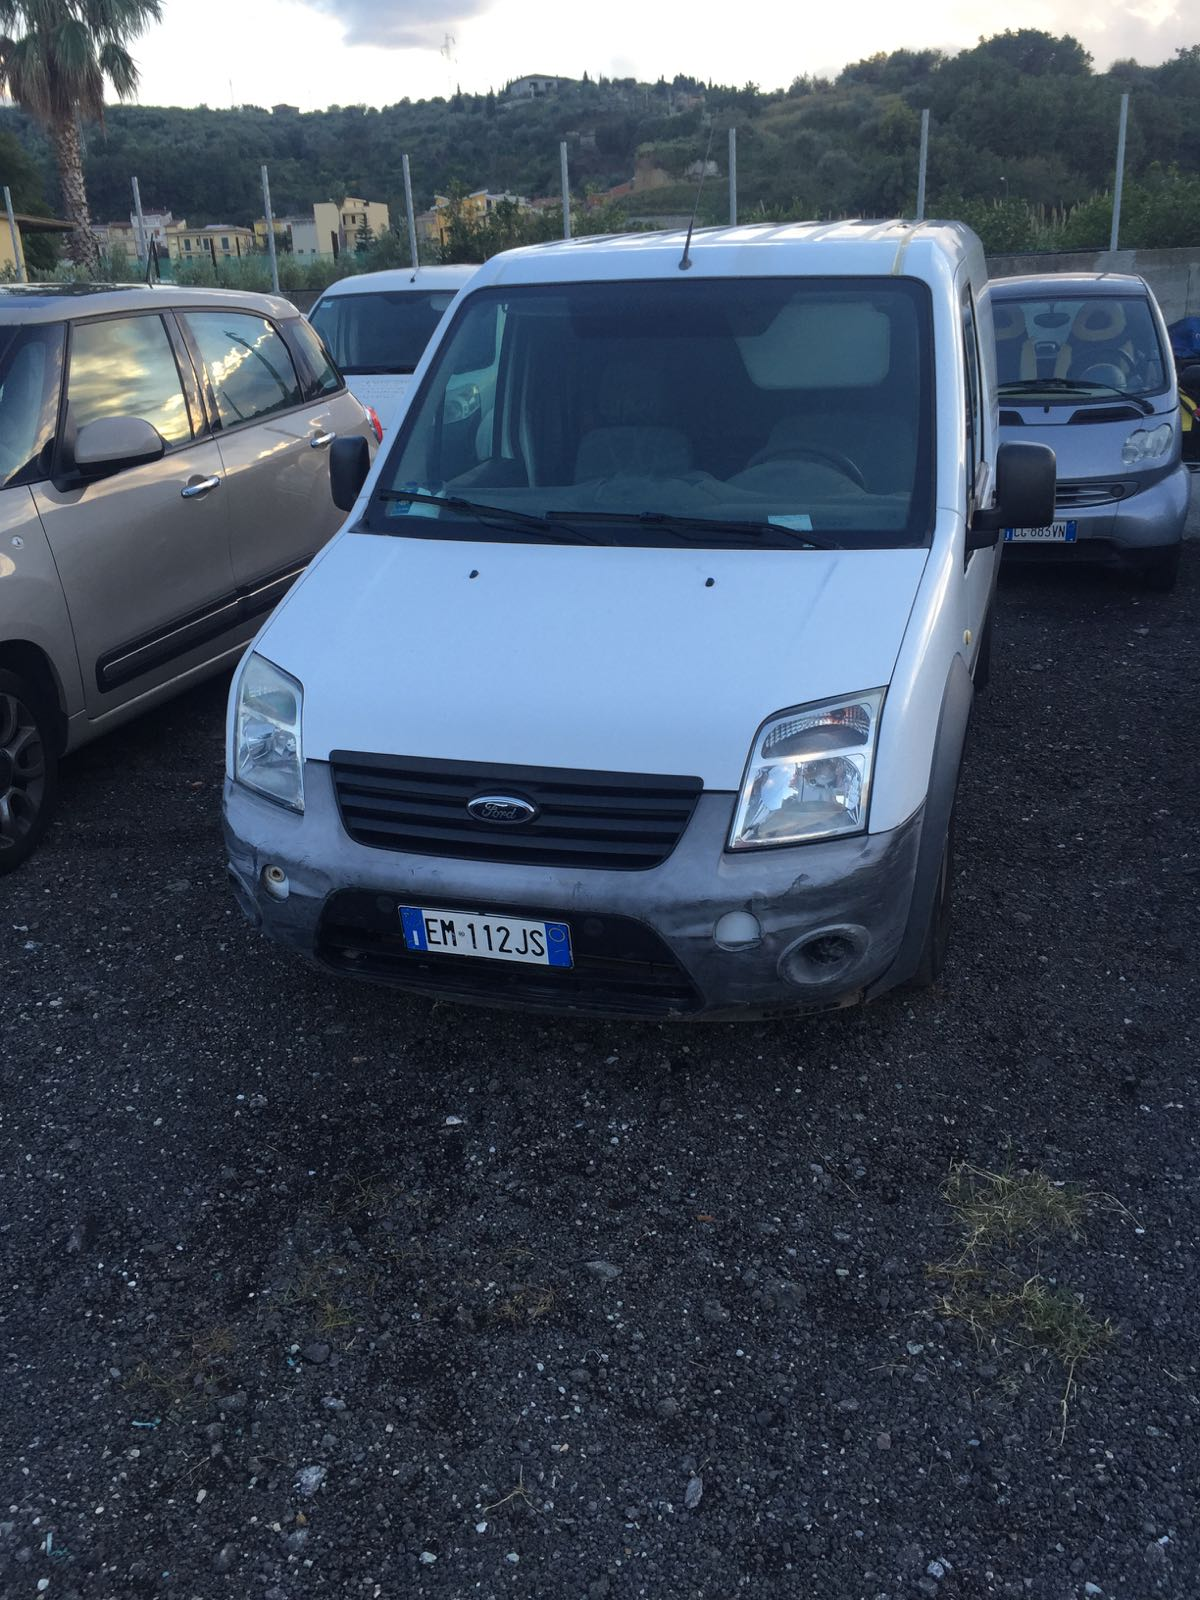 N. 1 AUTOCARRO FORD TRANSIT CONNECT